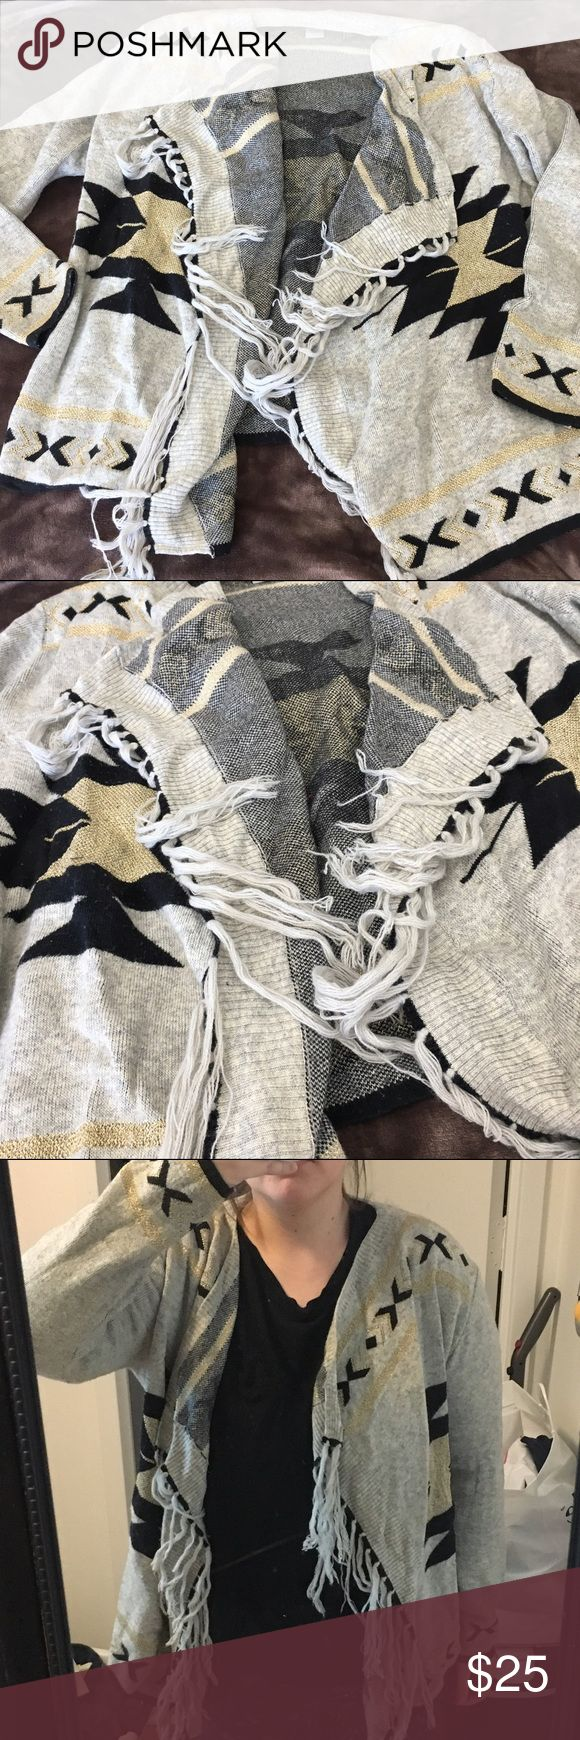 • Frayed Tribal Sweater • Swinging open face tribal sweater with frayed edges. The sweater is a light grayish color with black and gold design. Great condition! Sweaters Cardigans